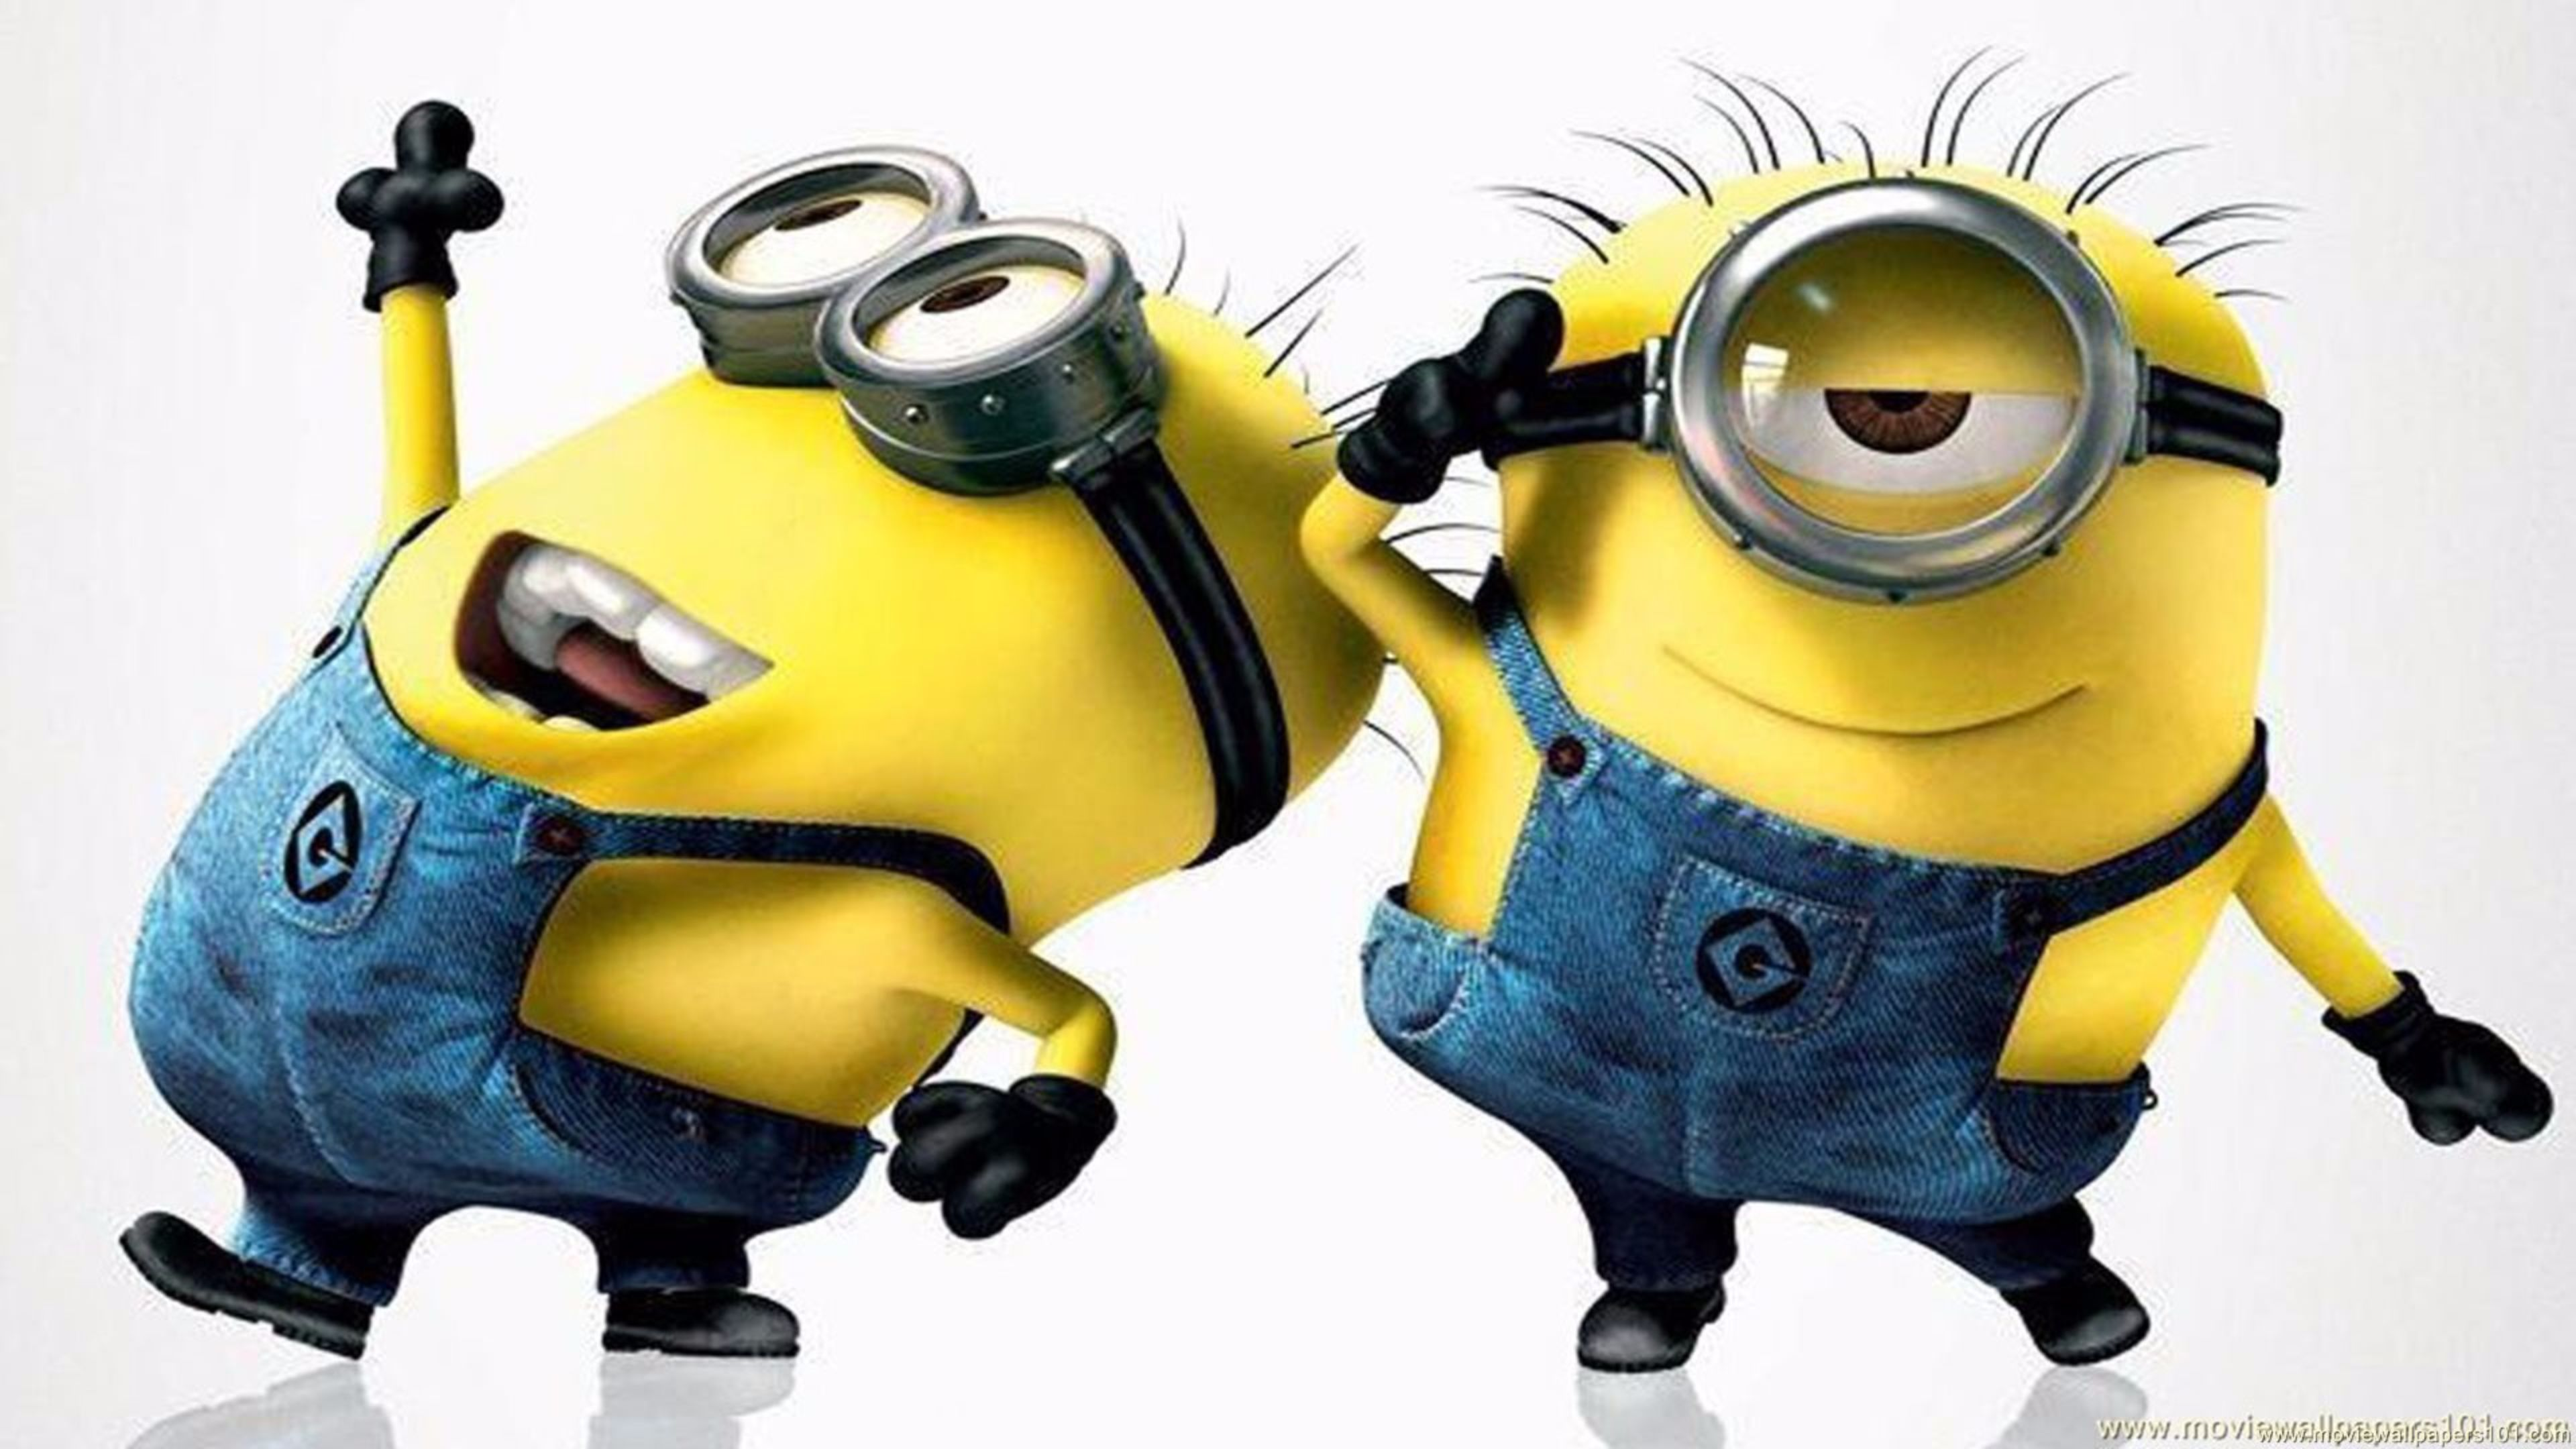 Minions Wallpapers Photos And Desktop Backgrounds Up To 8K